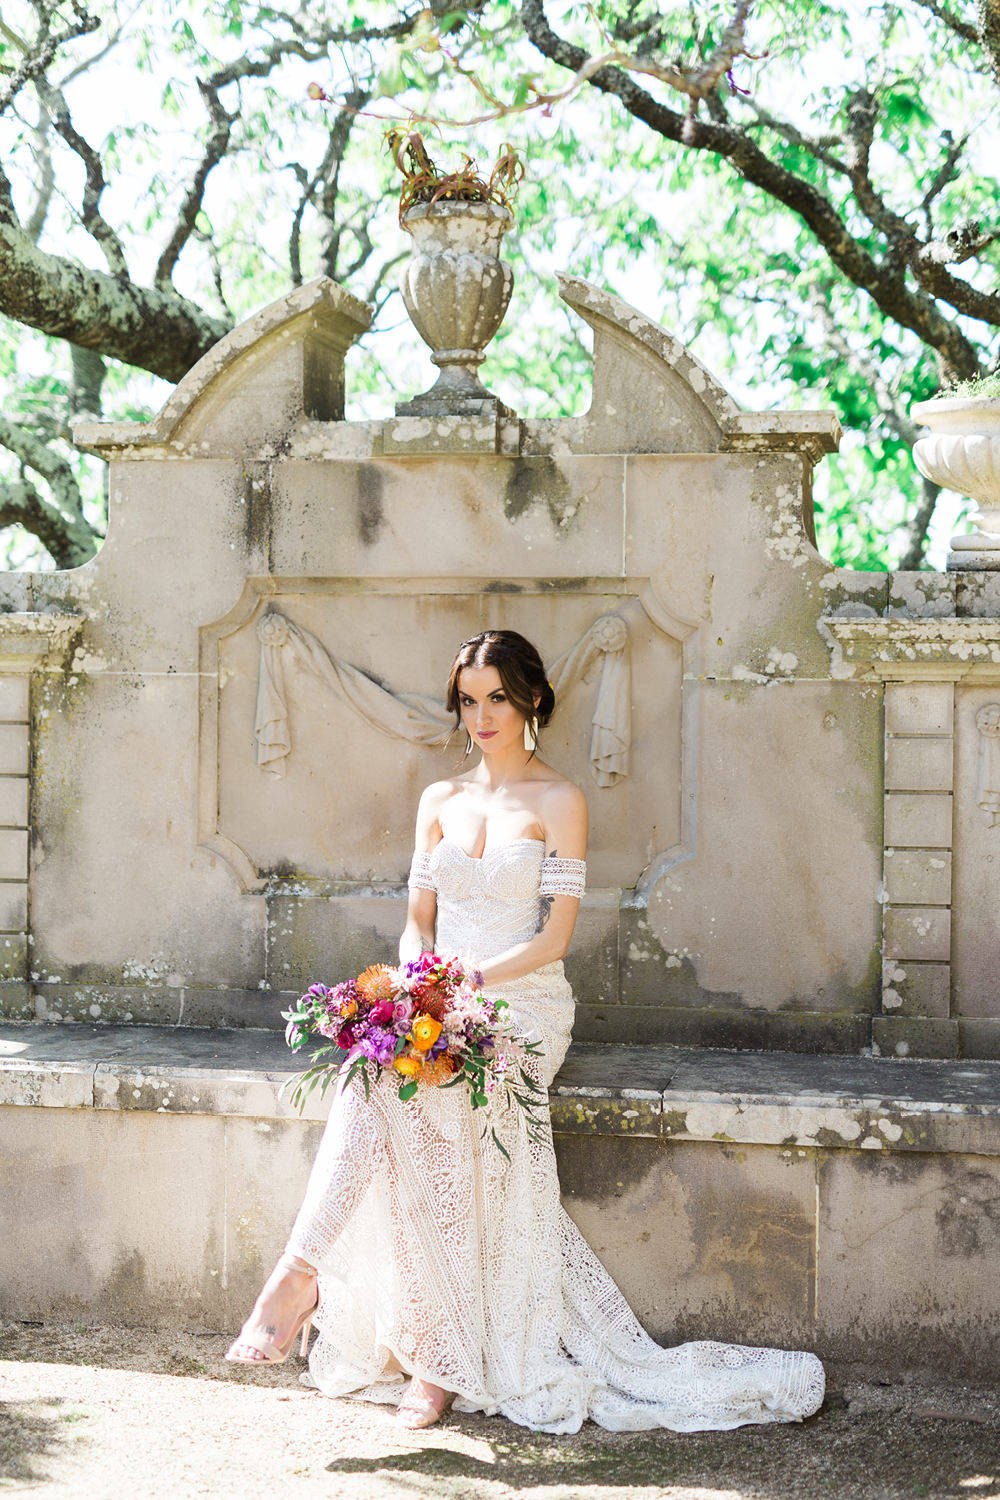 Bride Wedding Dress and Bouquet Pose in Elopement in Seteais Palace in Sintra